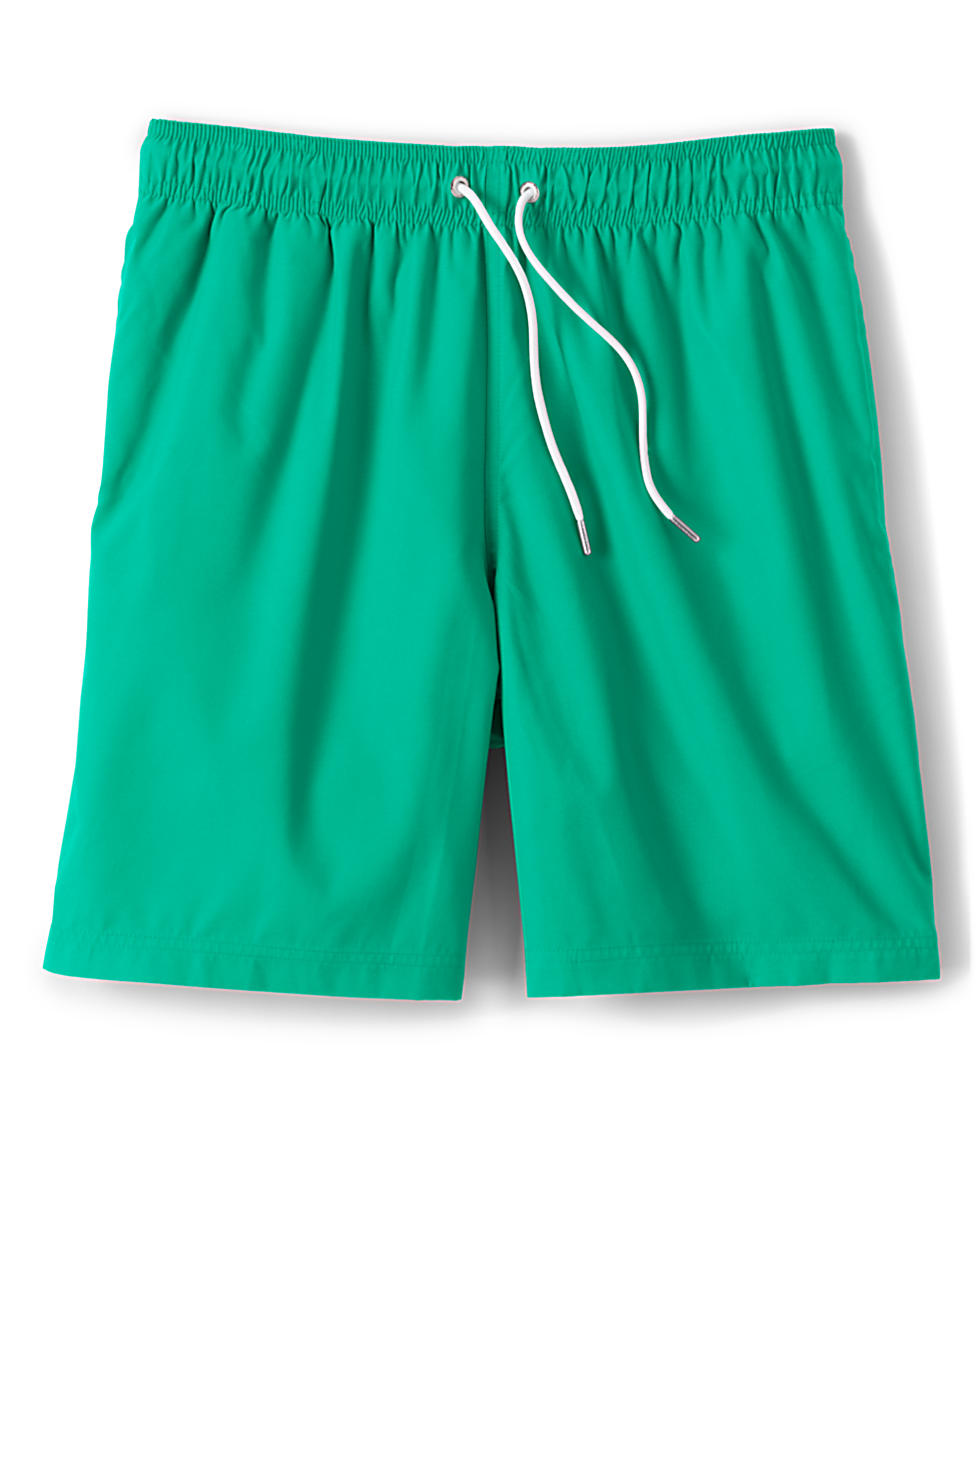 Lands End Mens 8 Inch Solid Volley Swim Trunks